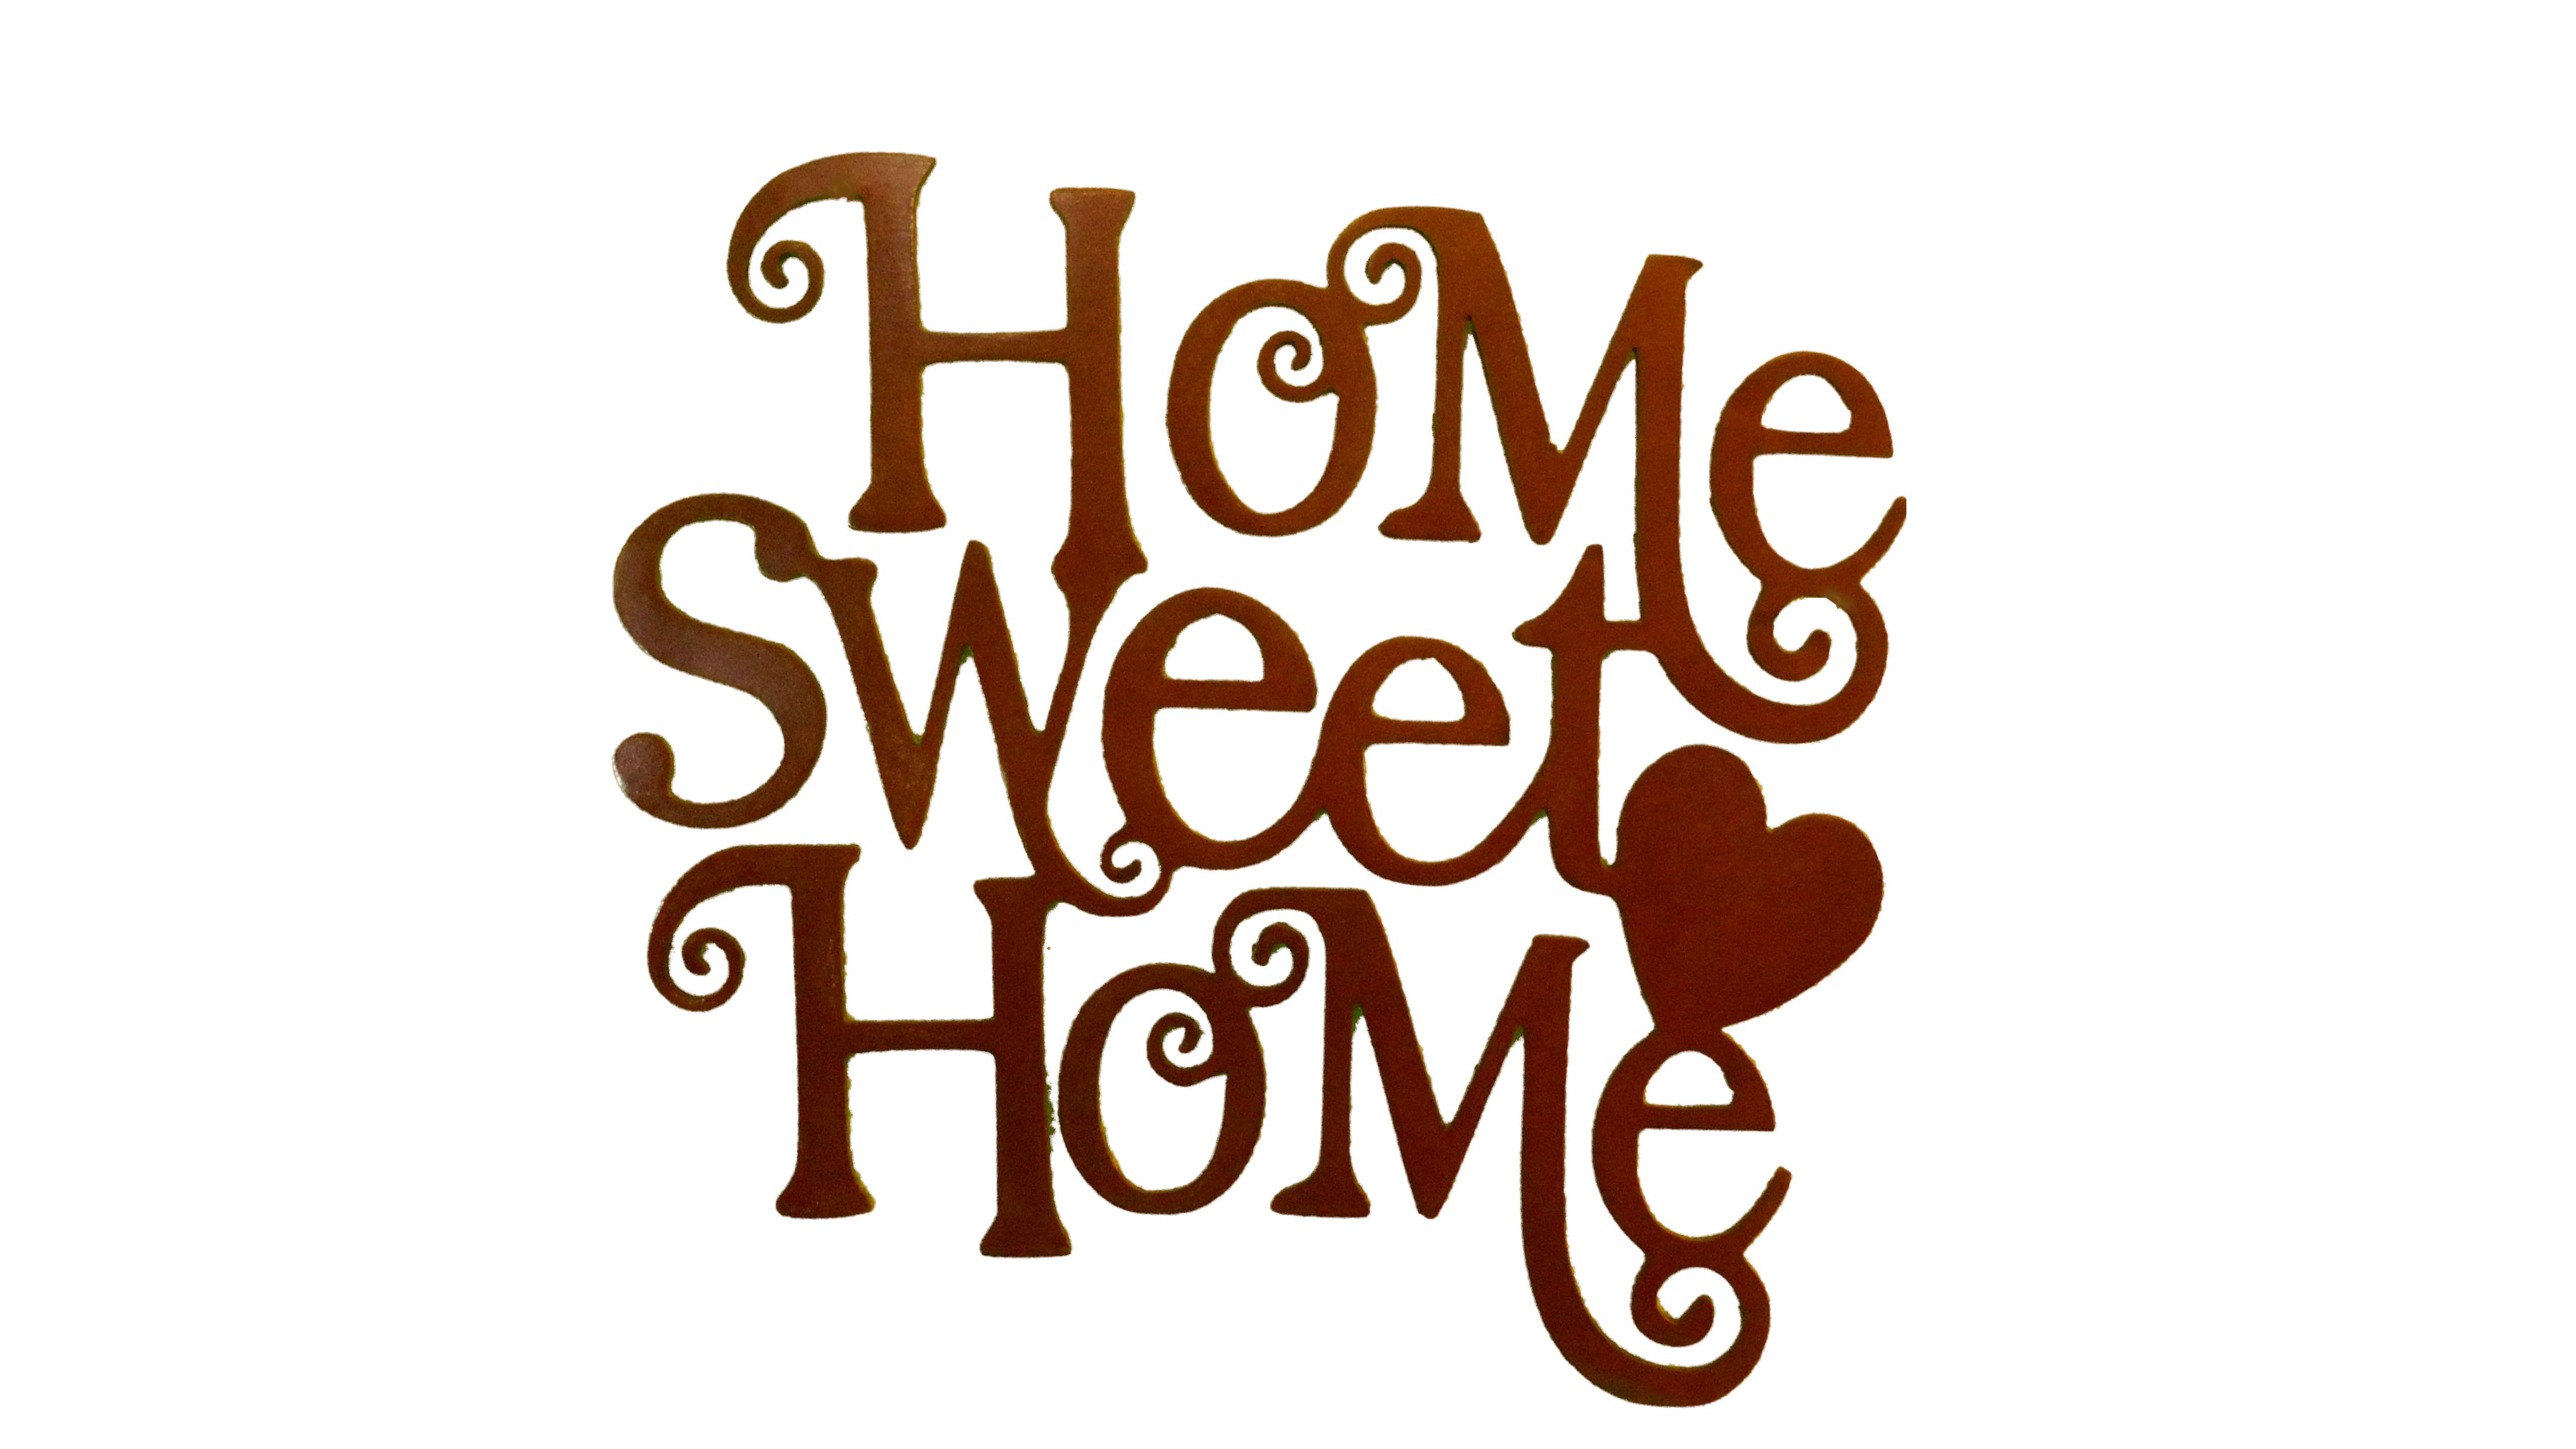 Home sweet home sign png. Free photo lights mountains